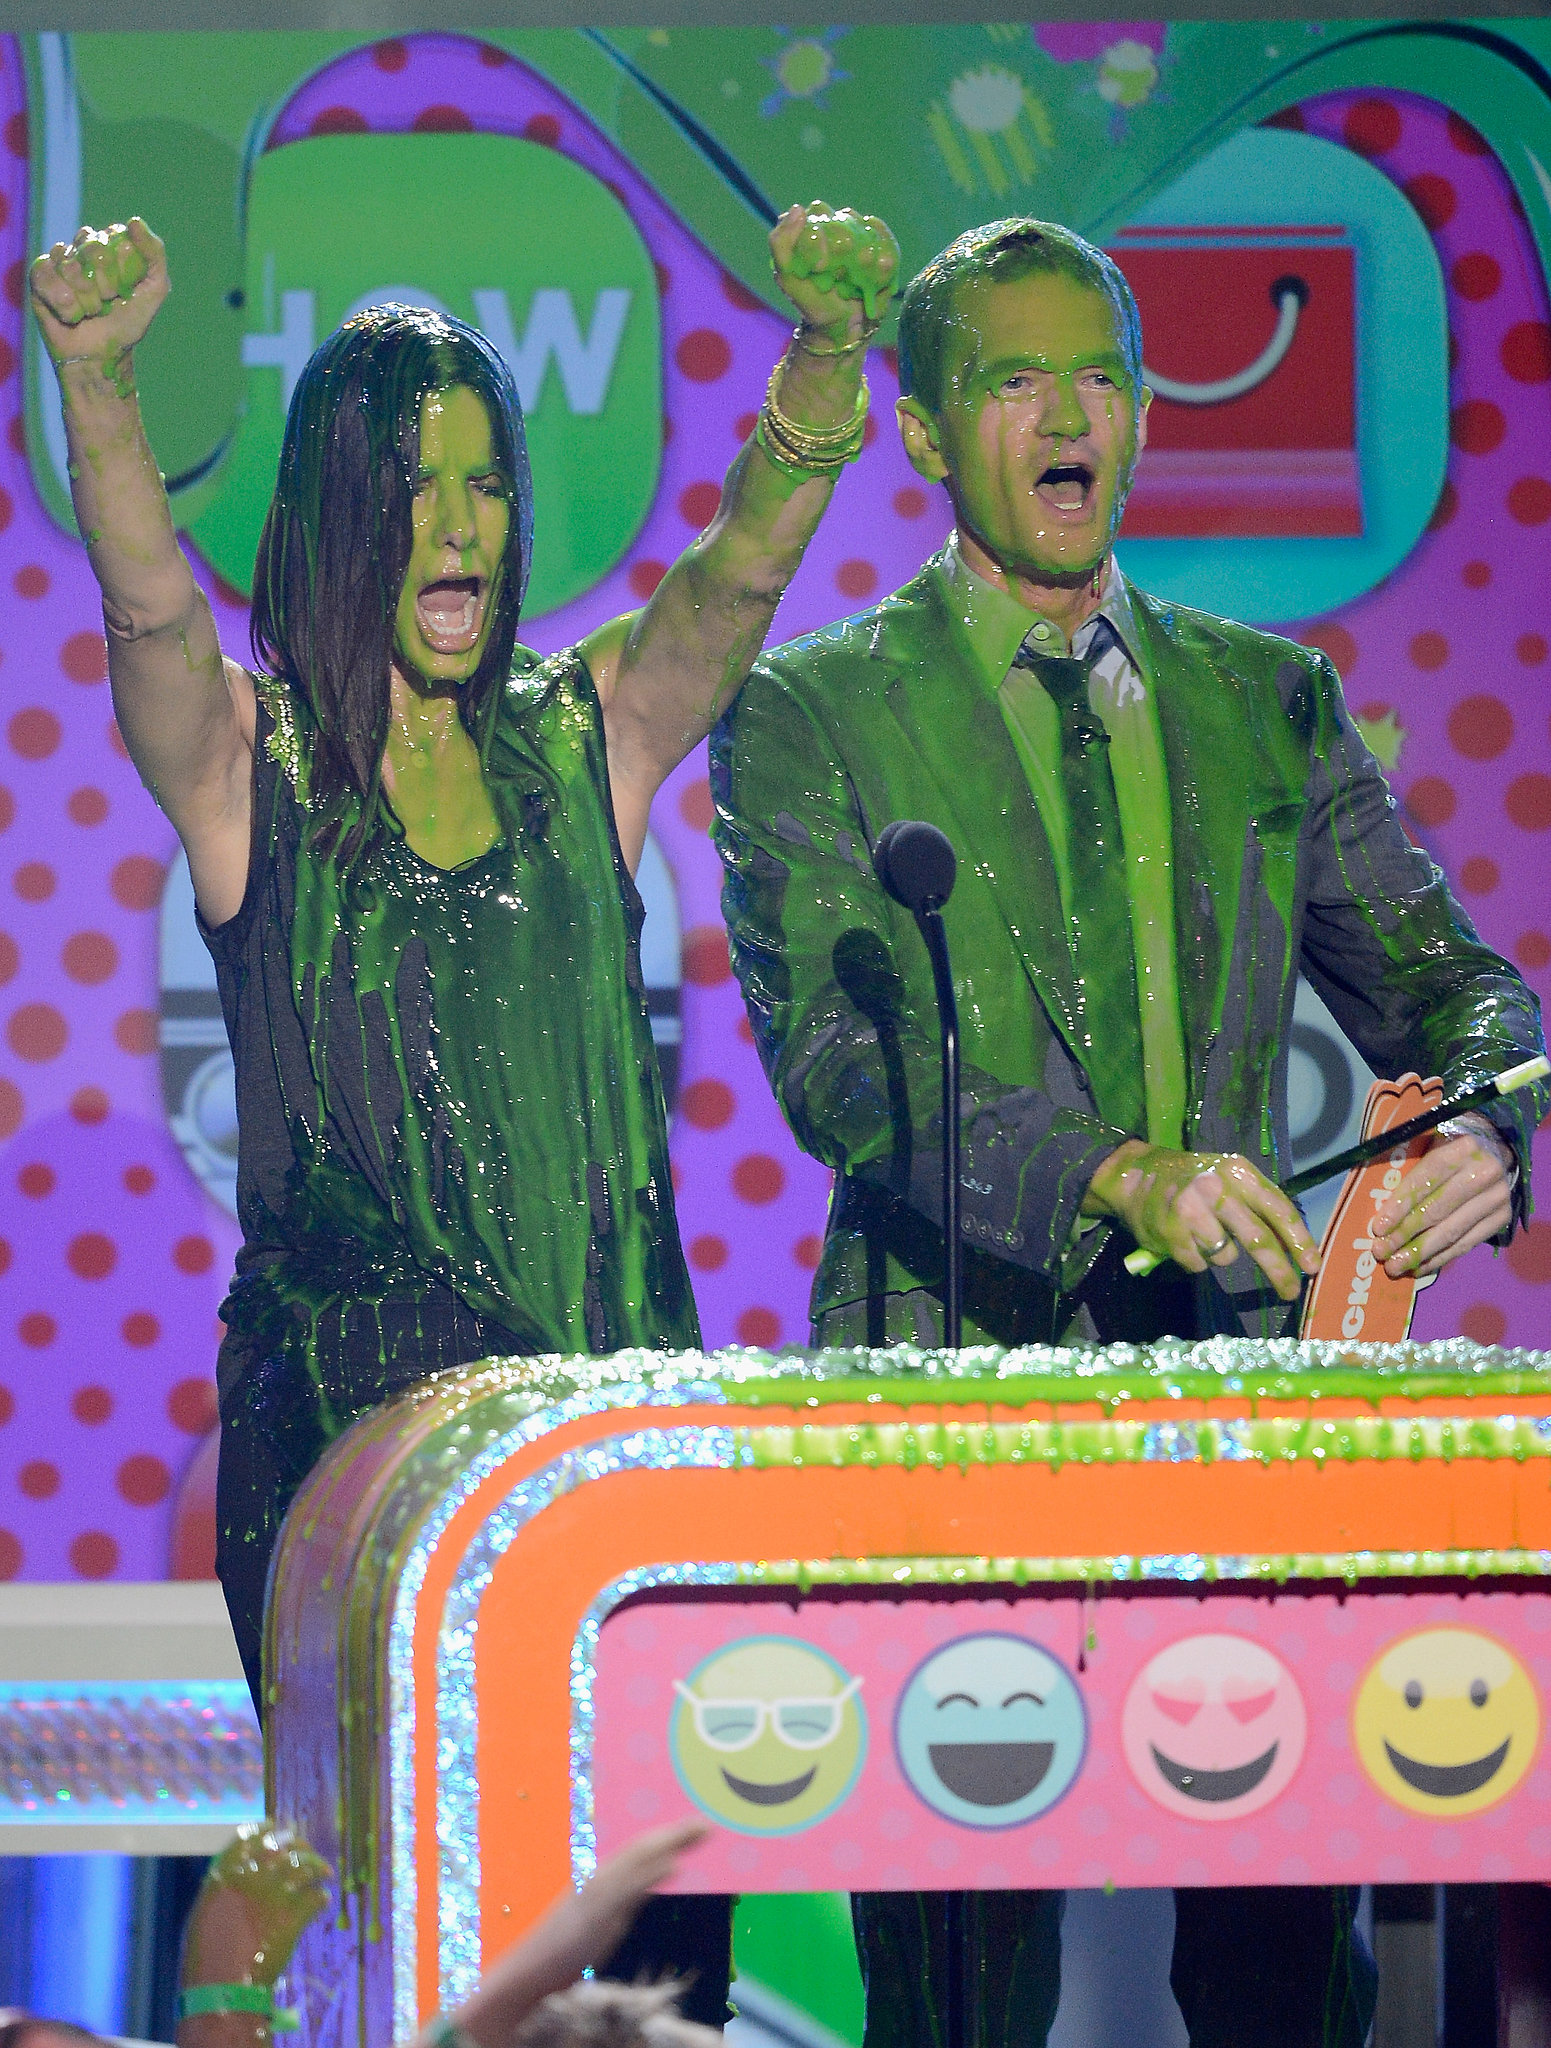 She and Neil Patrick Harris were covered in slime at the Kids' Choice Awards in March 2013.